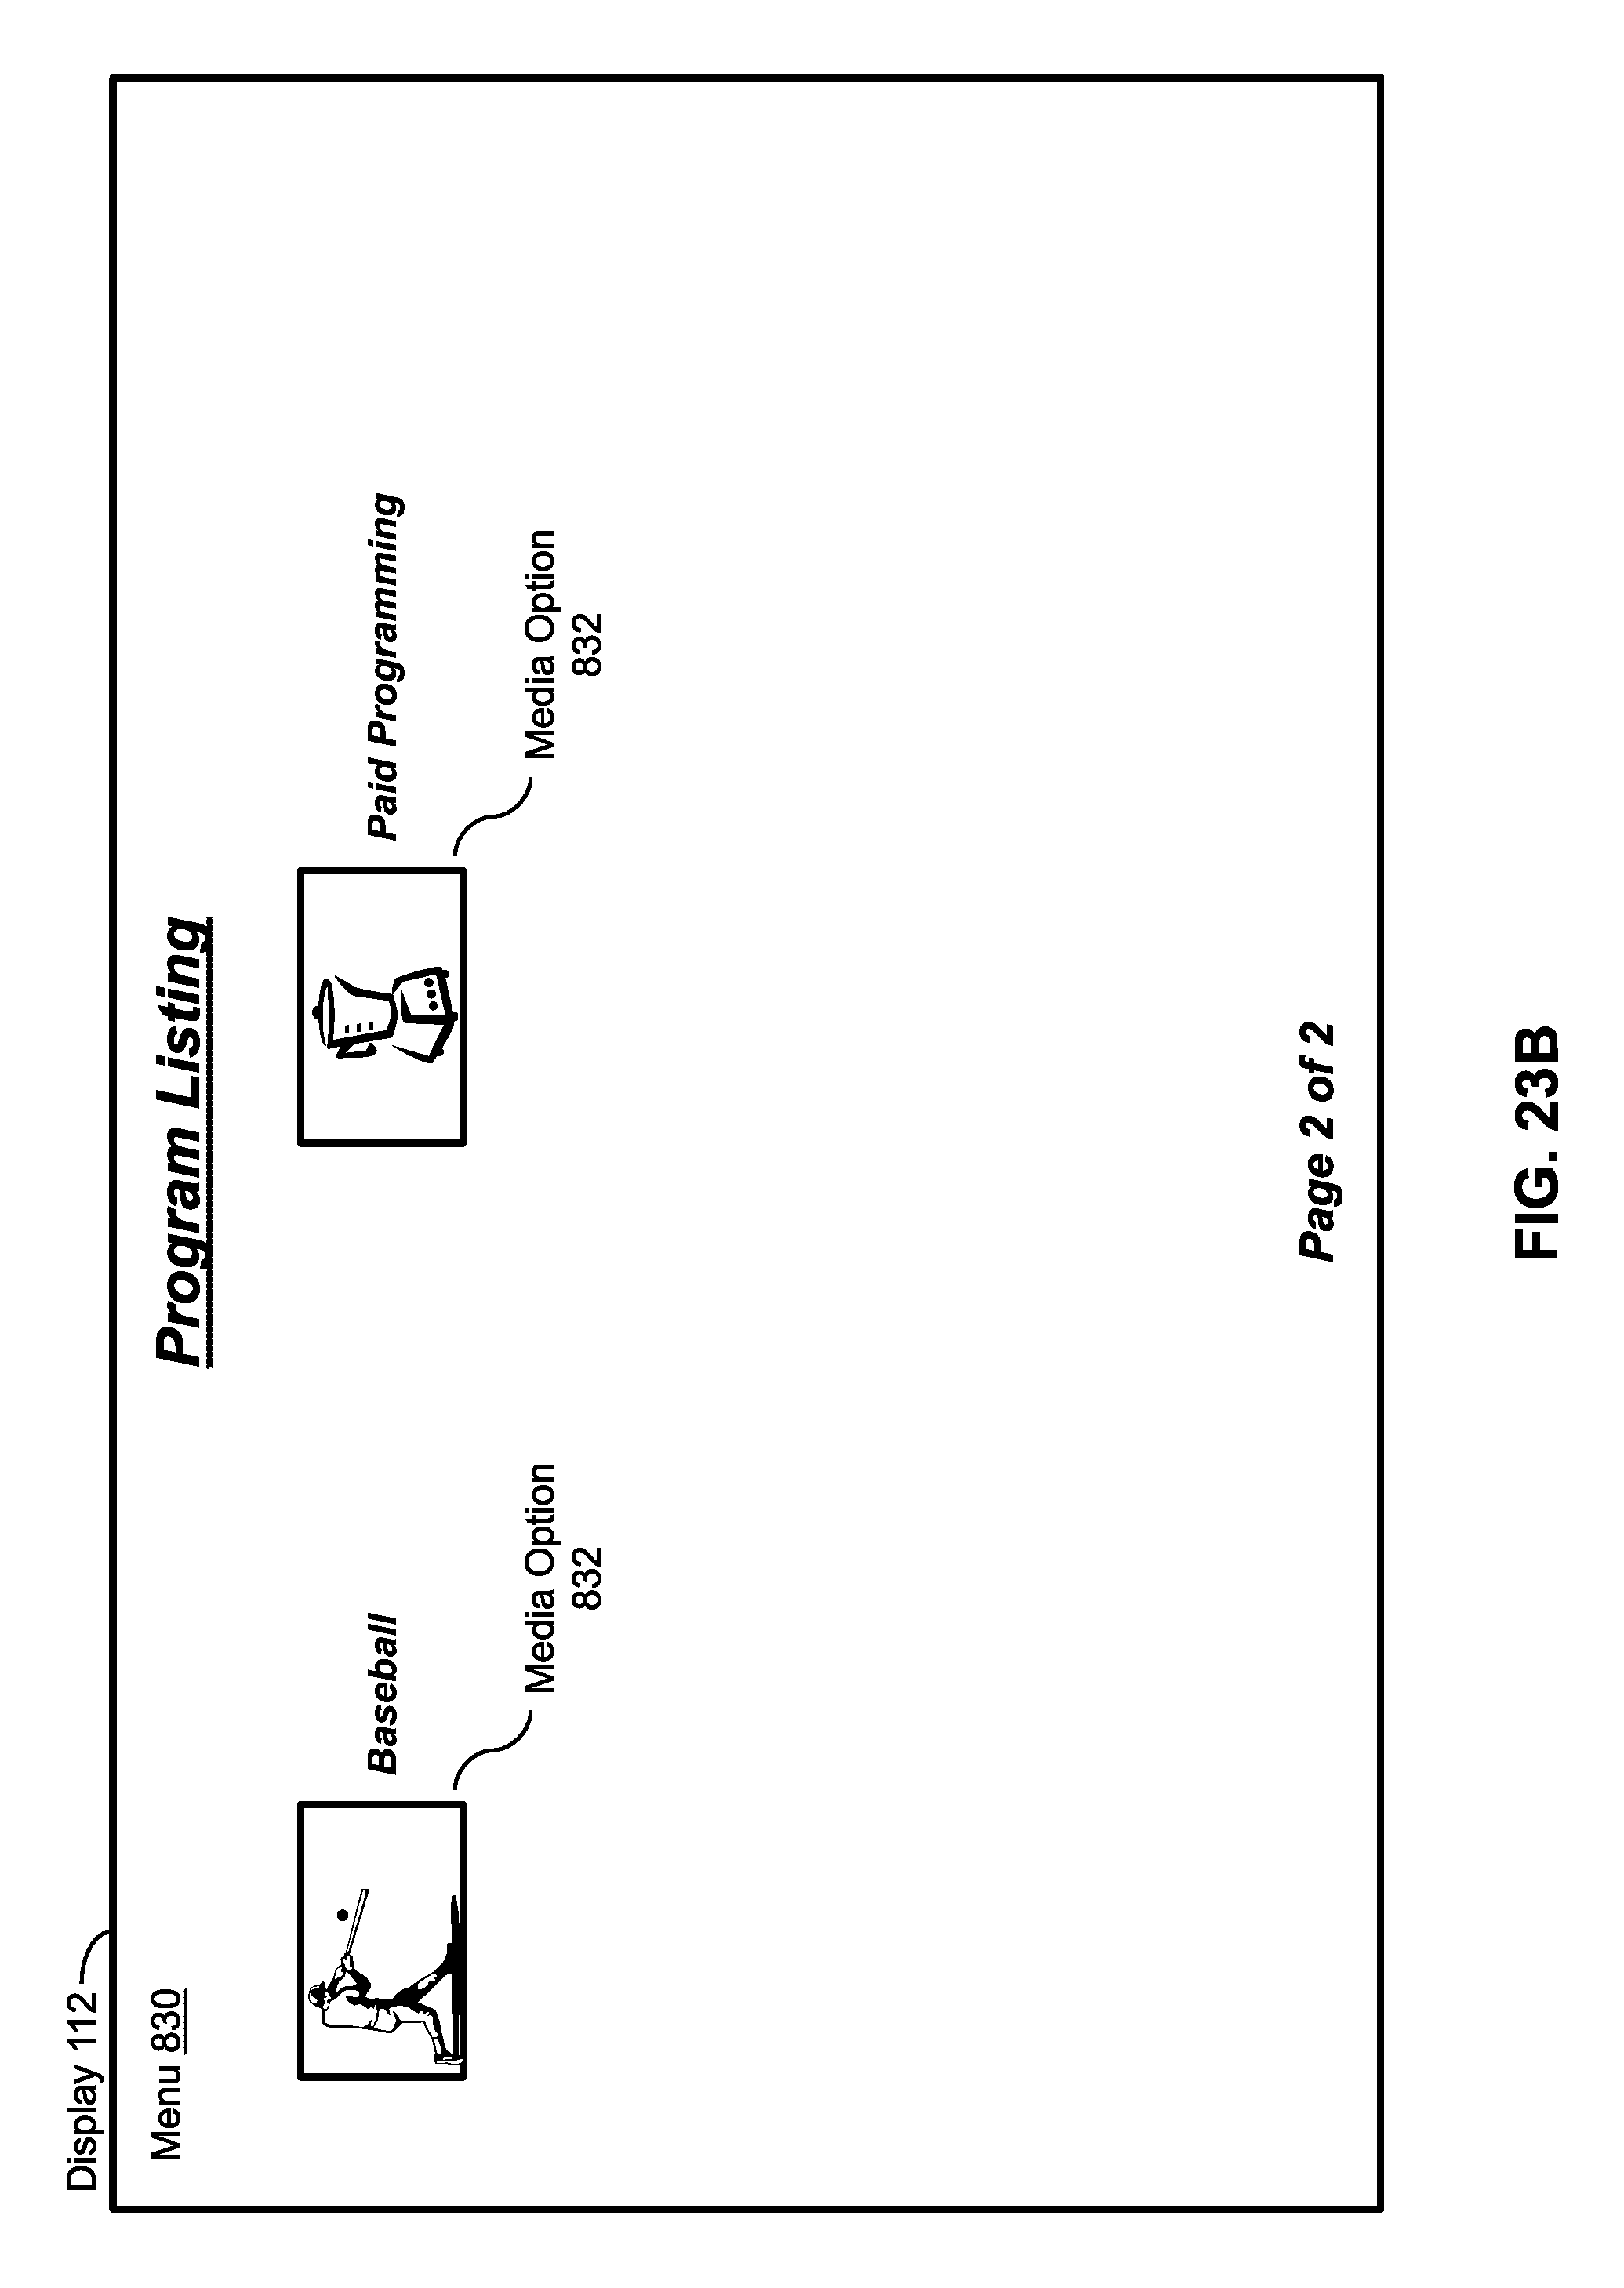 US9338493B2 - Intelligent automated assistant for TV user